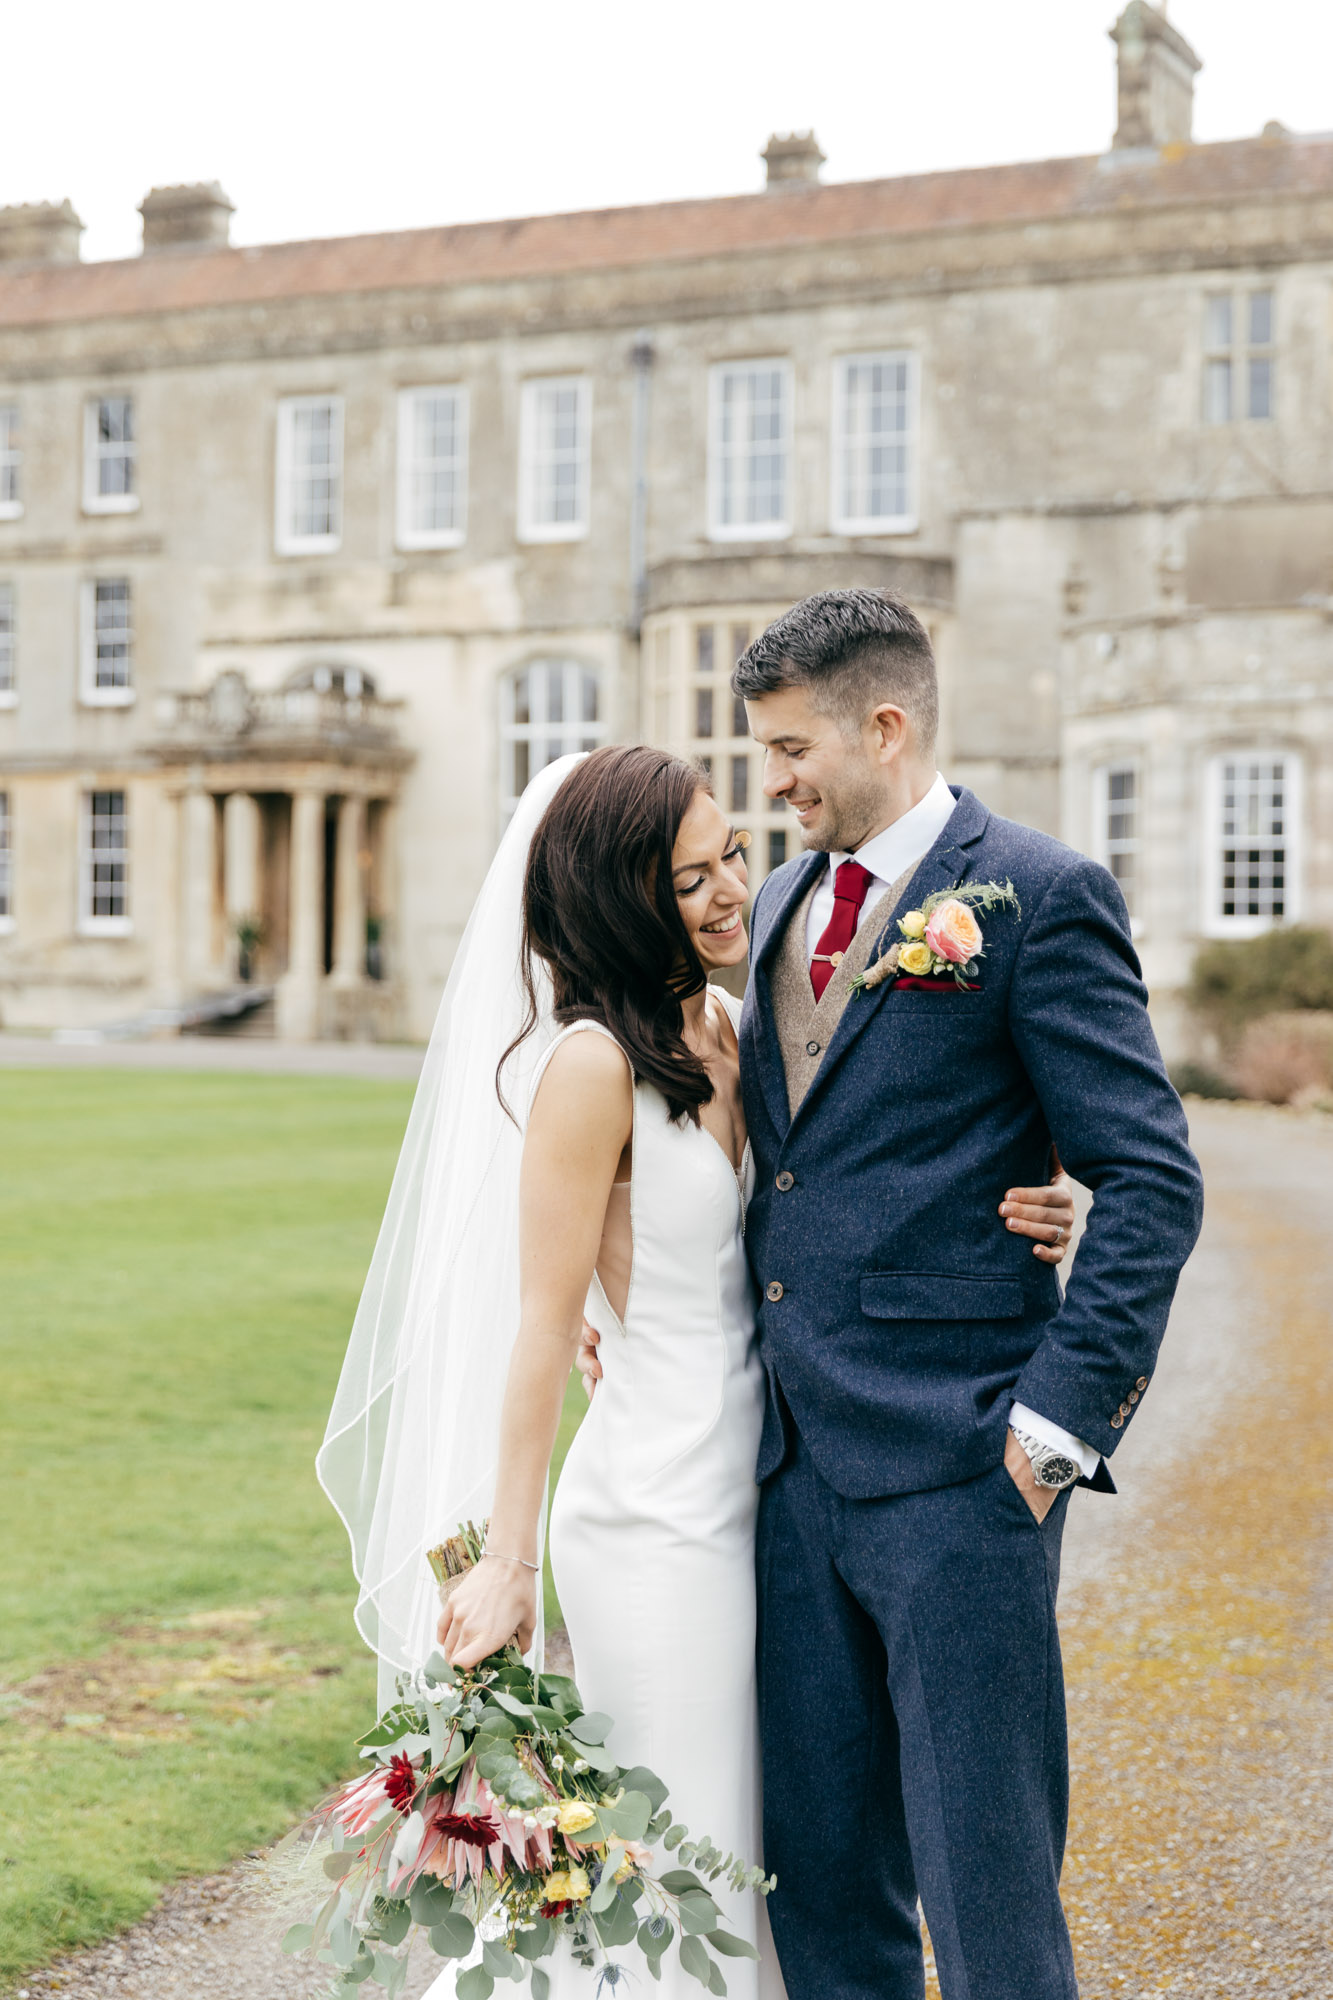 Natural wedding photography of happy couple with Elmore Court Wedding in background